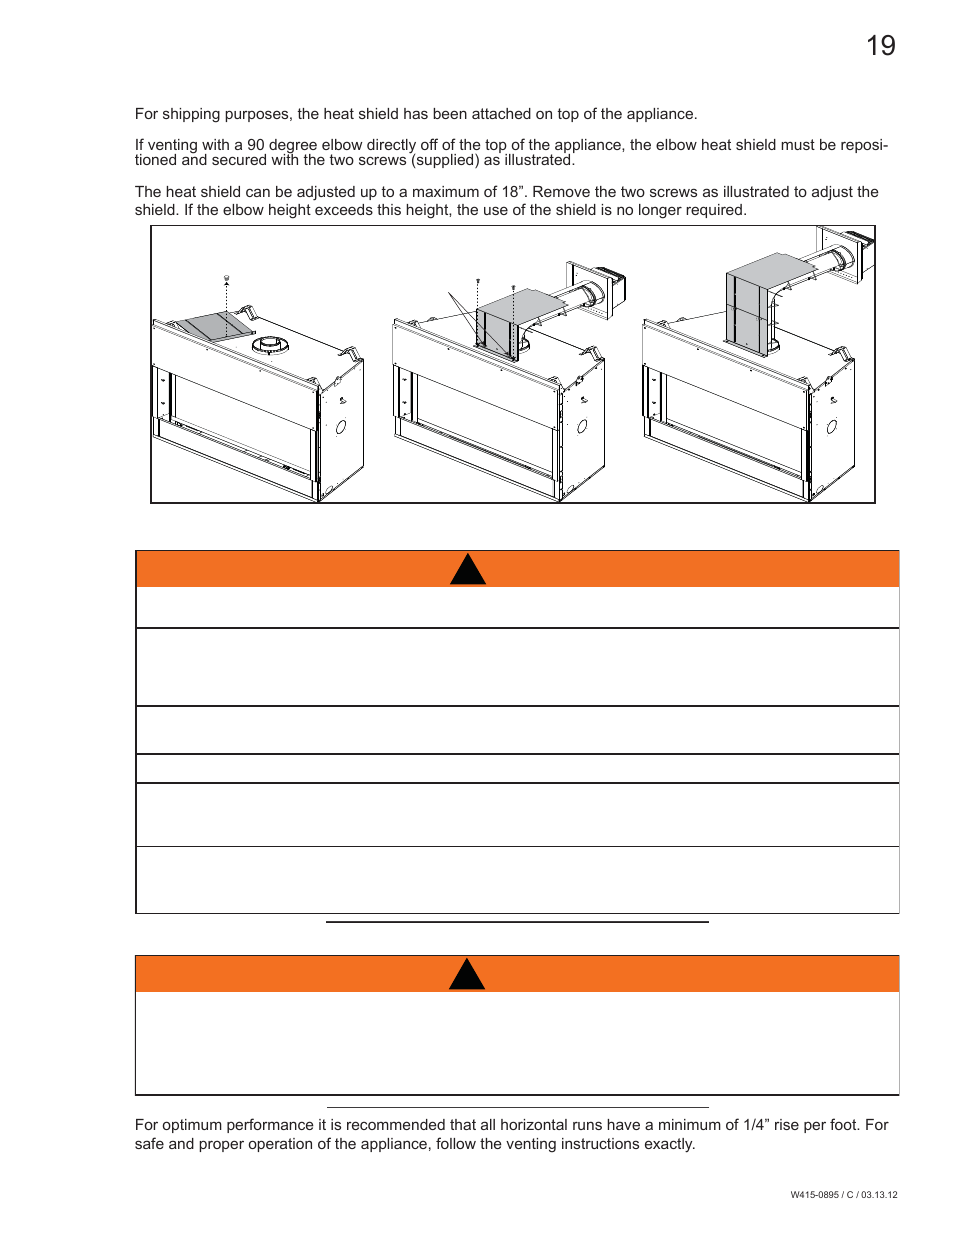 Warning, 0 installation | Continental Fireplaces CLHD45 User Manual